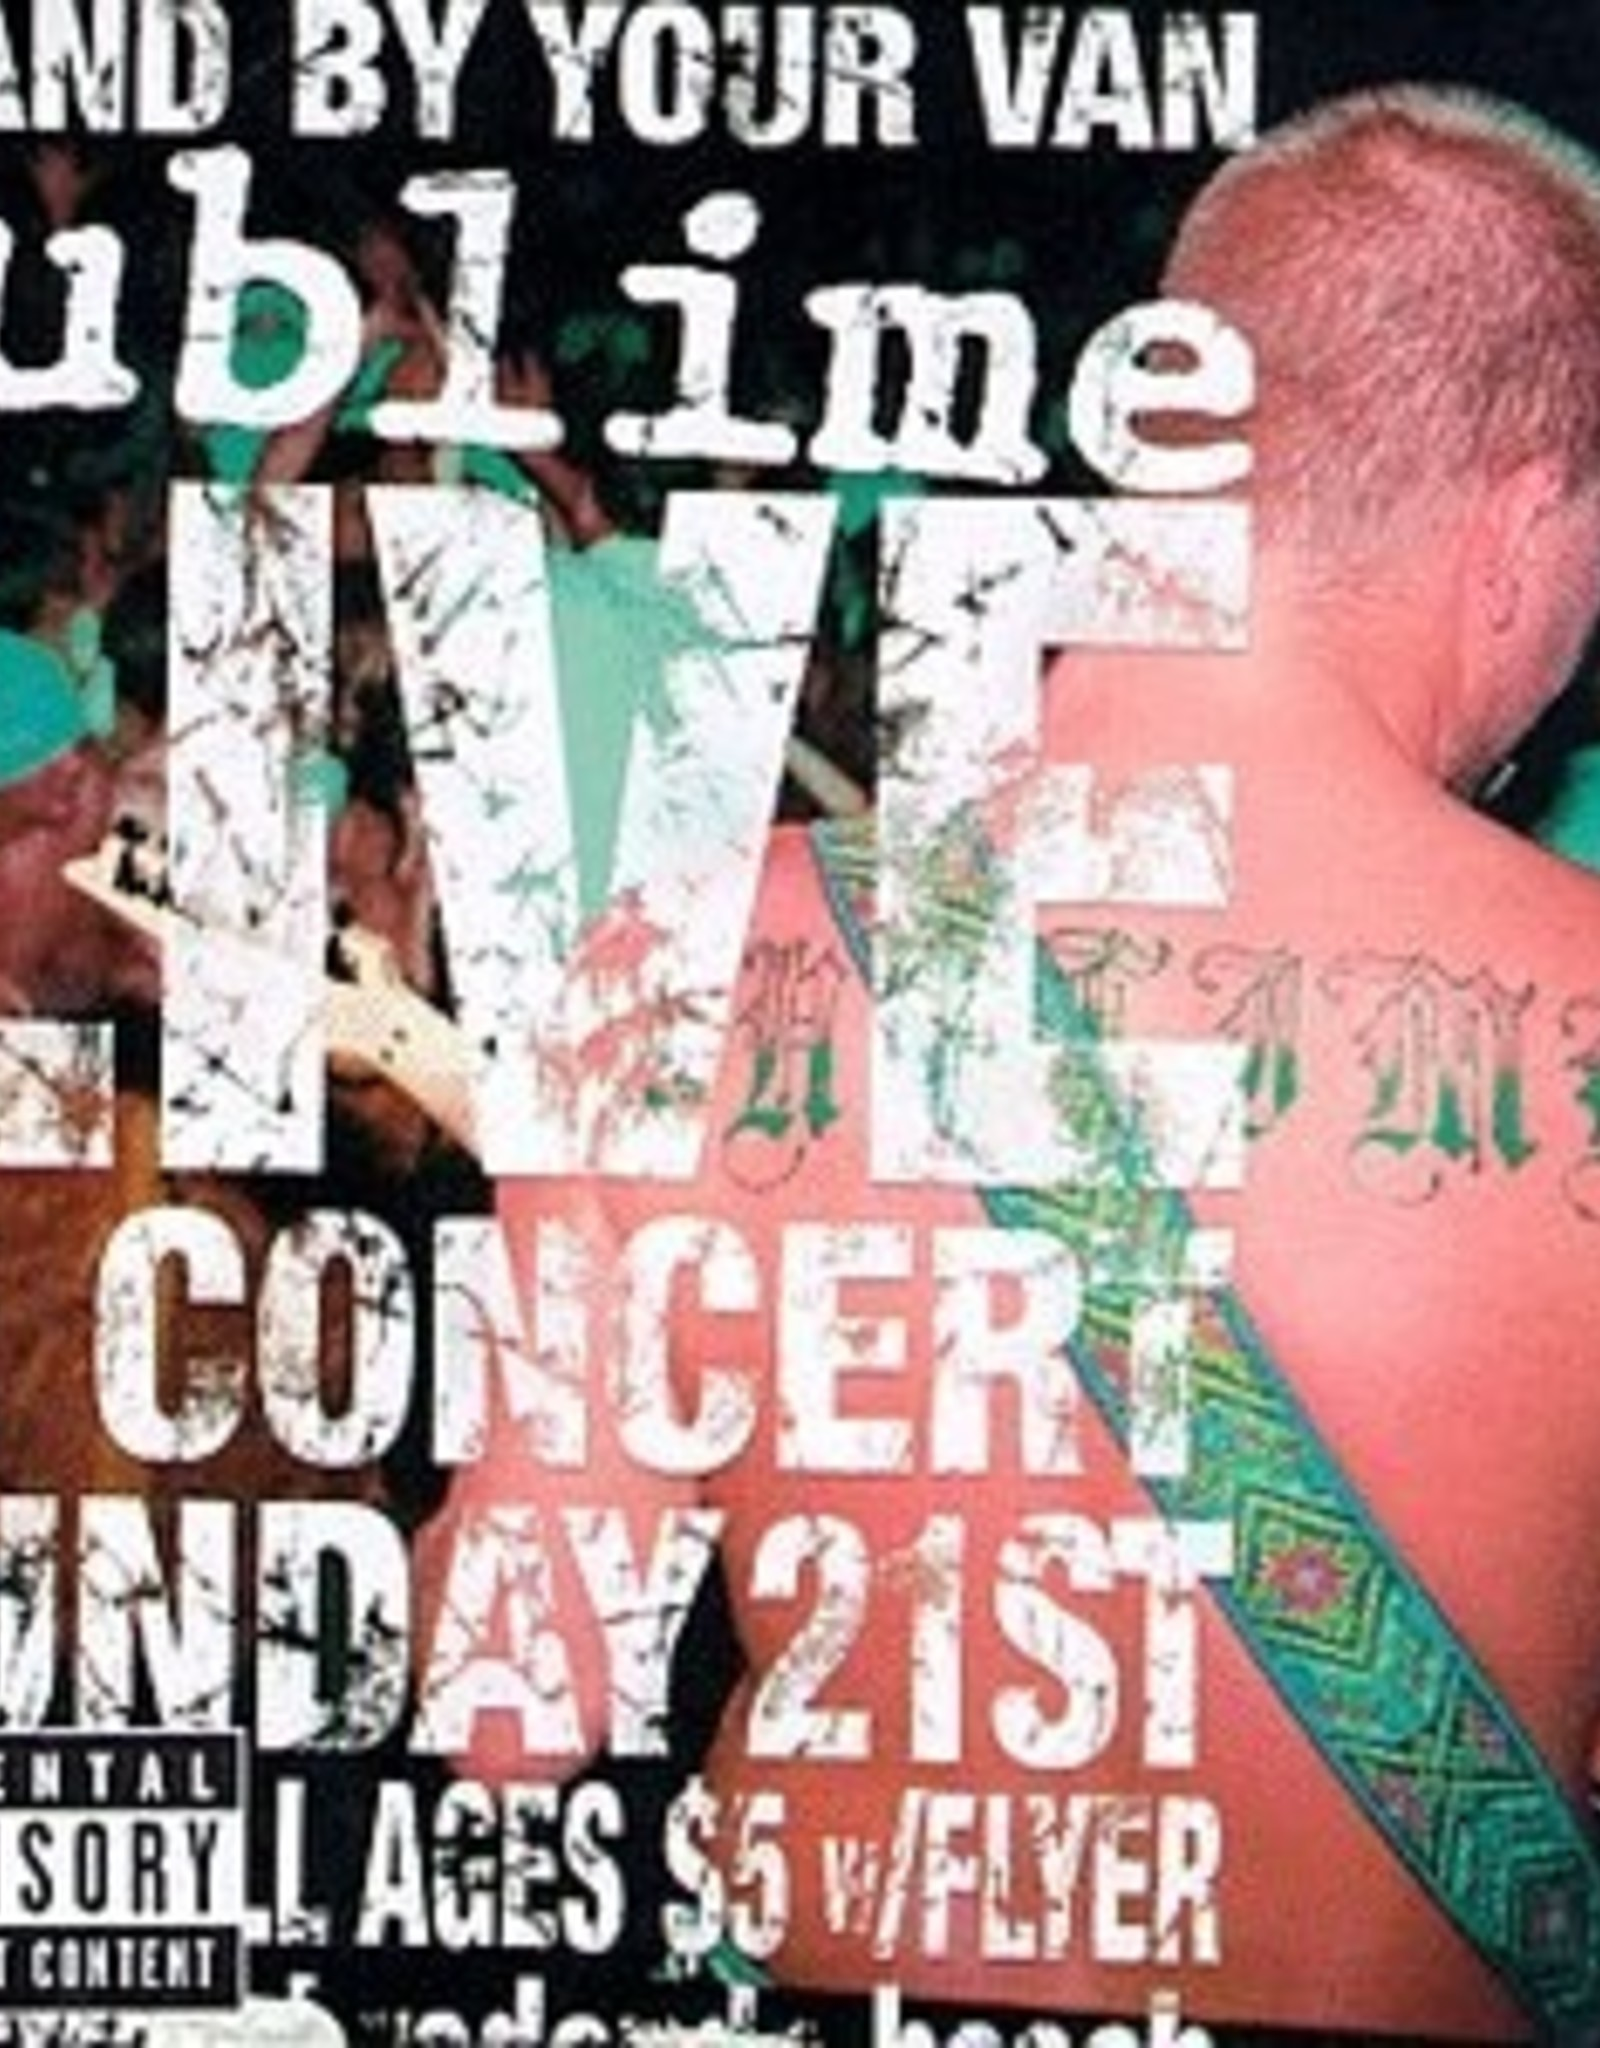 Sublime - Stand By Your Van Live